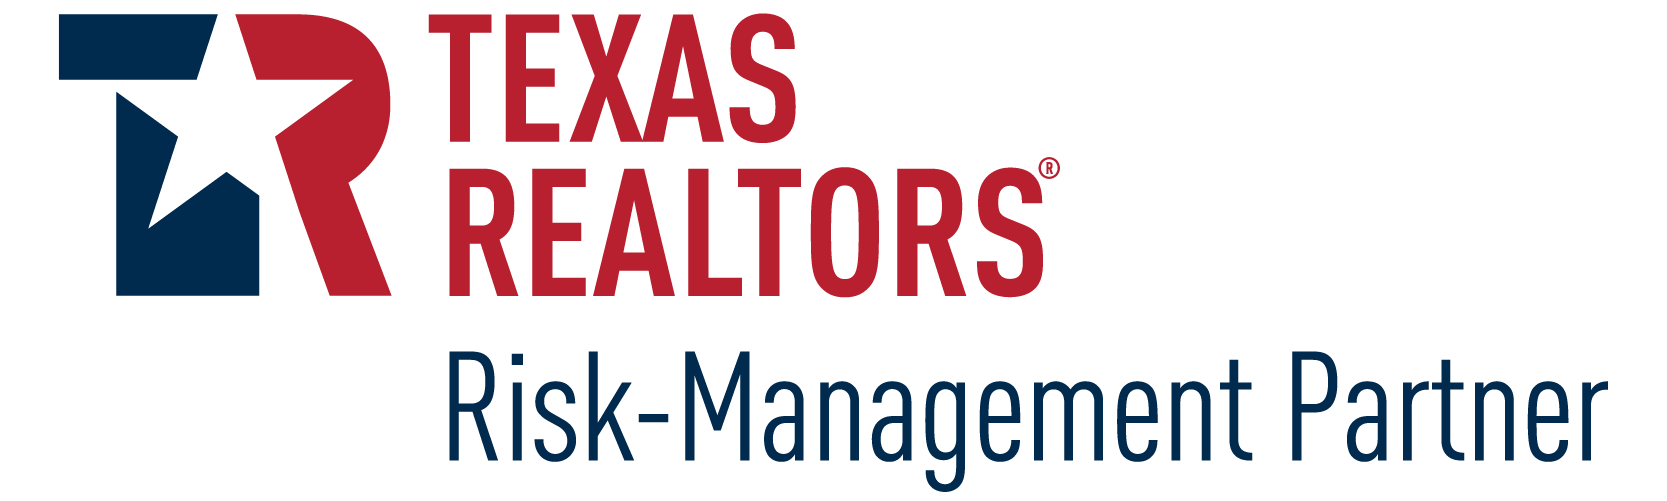 Texas Realtors Endorsement